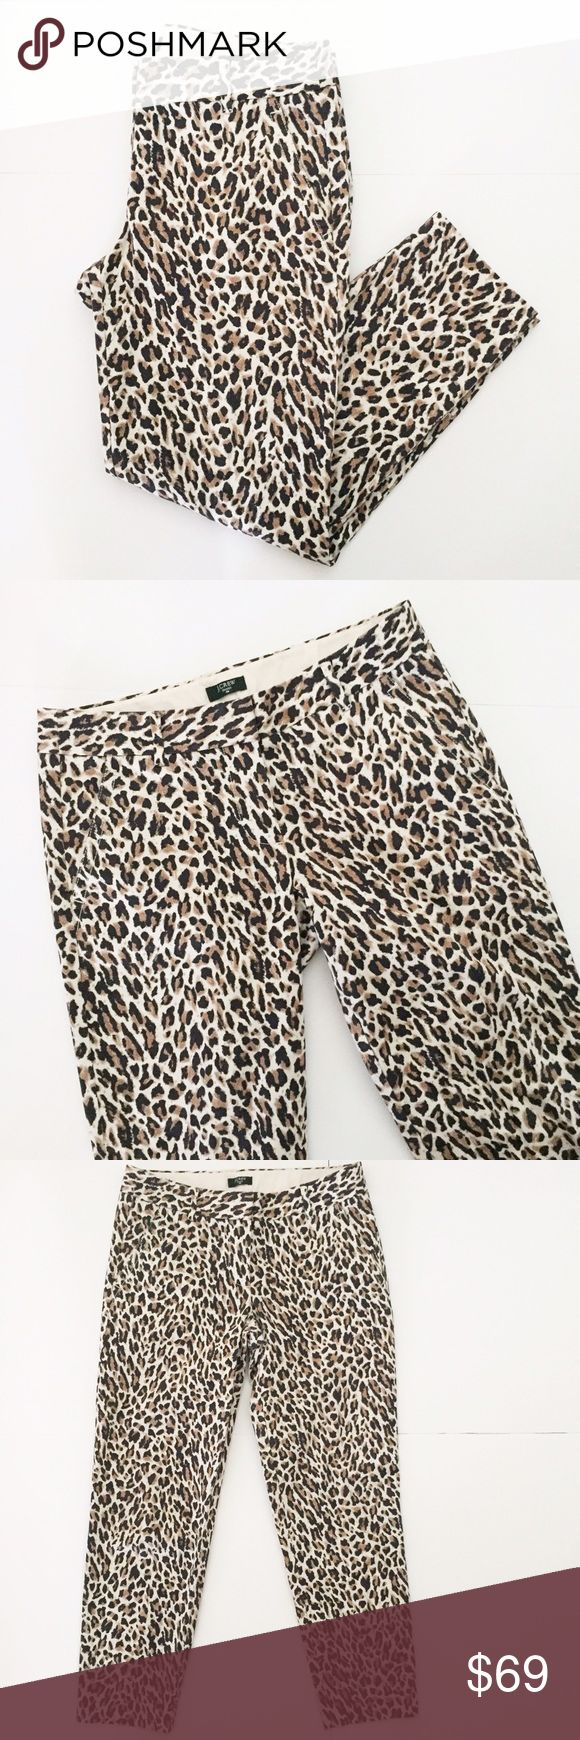 "J. Crew Stretch Animal Print City Fit Crop Pants J. Crew Stretch City Fit Capri / Crop Pant. Animal Print- black, tan, brown, cream / white. Has 2 front and 2 back pockets. 33 1/2"" long, inseam about 26"" long, ankle width 6"" flat, knee 8"" flat, thigh 10 1/2"" flat, waist 15 1/4"" laying flat. 98% cotton and 2% spandex. Great condition- barely worn. NO TRADES. J. Crew Pants Ankle & Cropped"